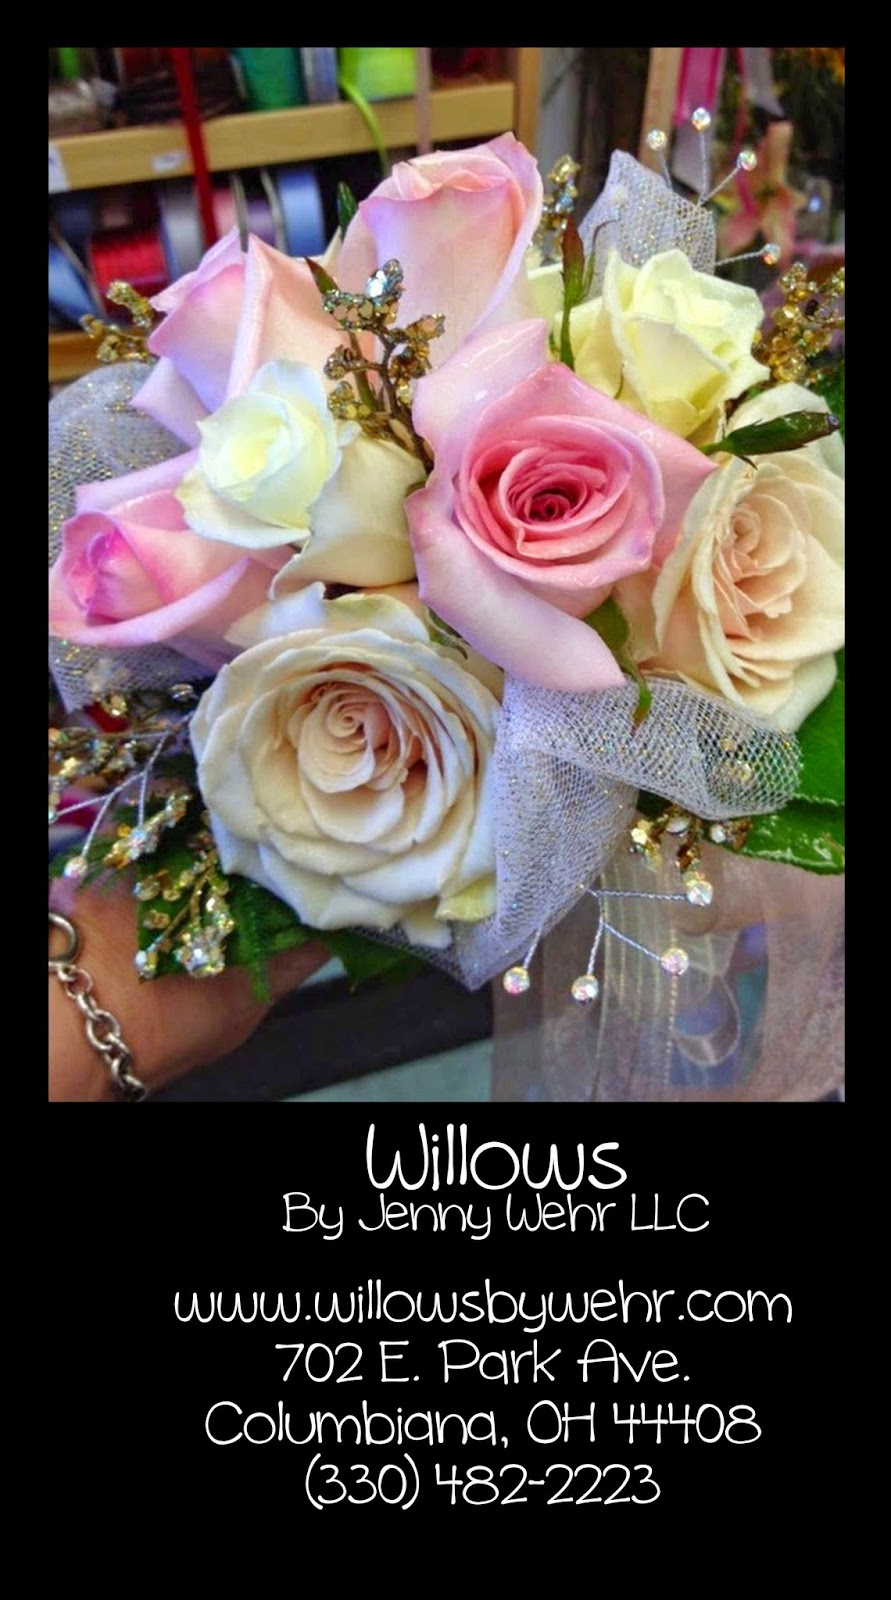 http://www.willowsbywehr.com/gallery/proms/